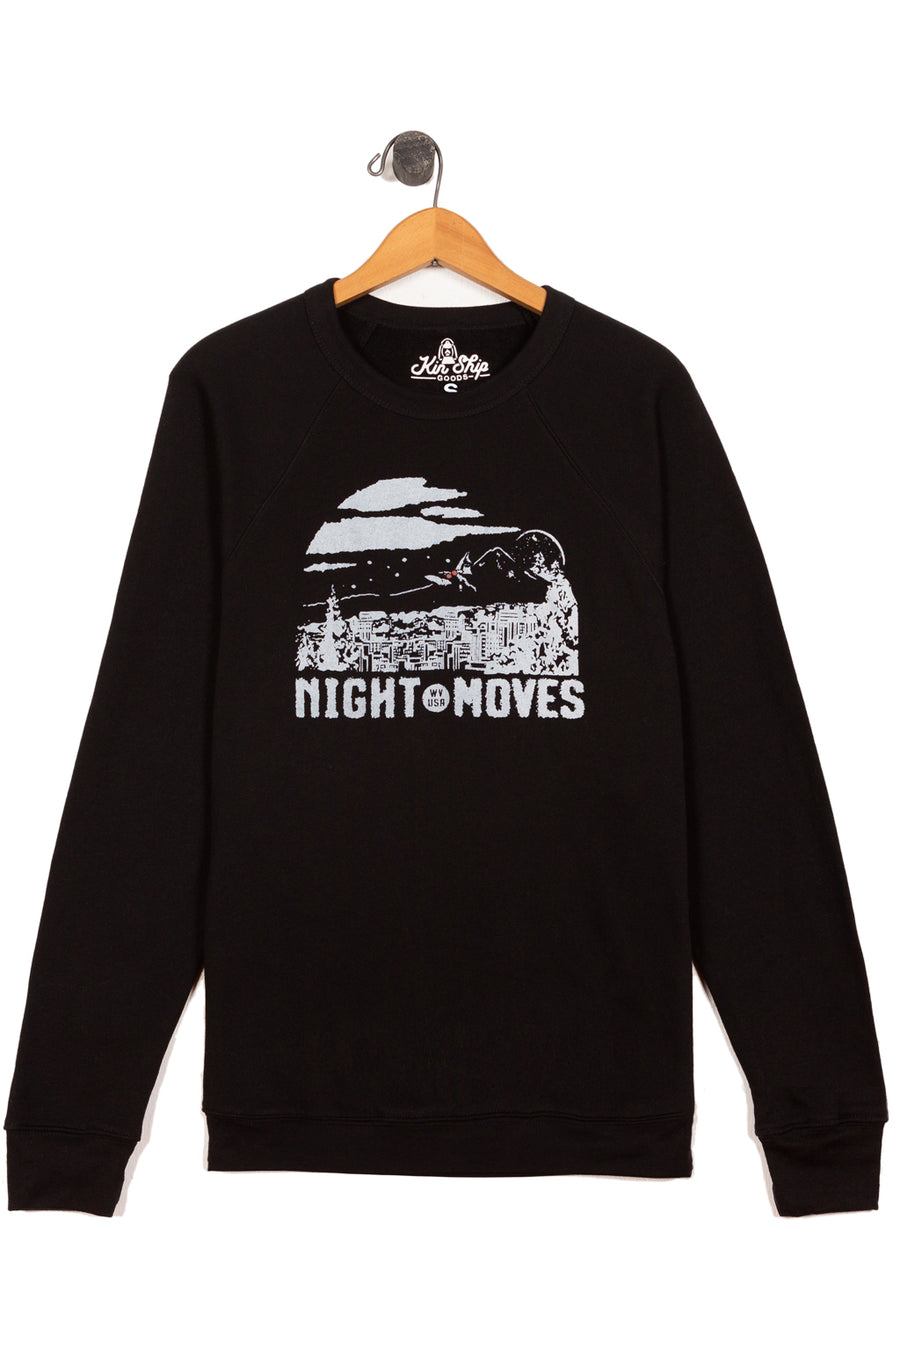 night moves mothman sweatshirt